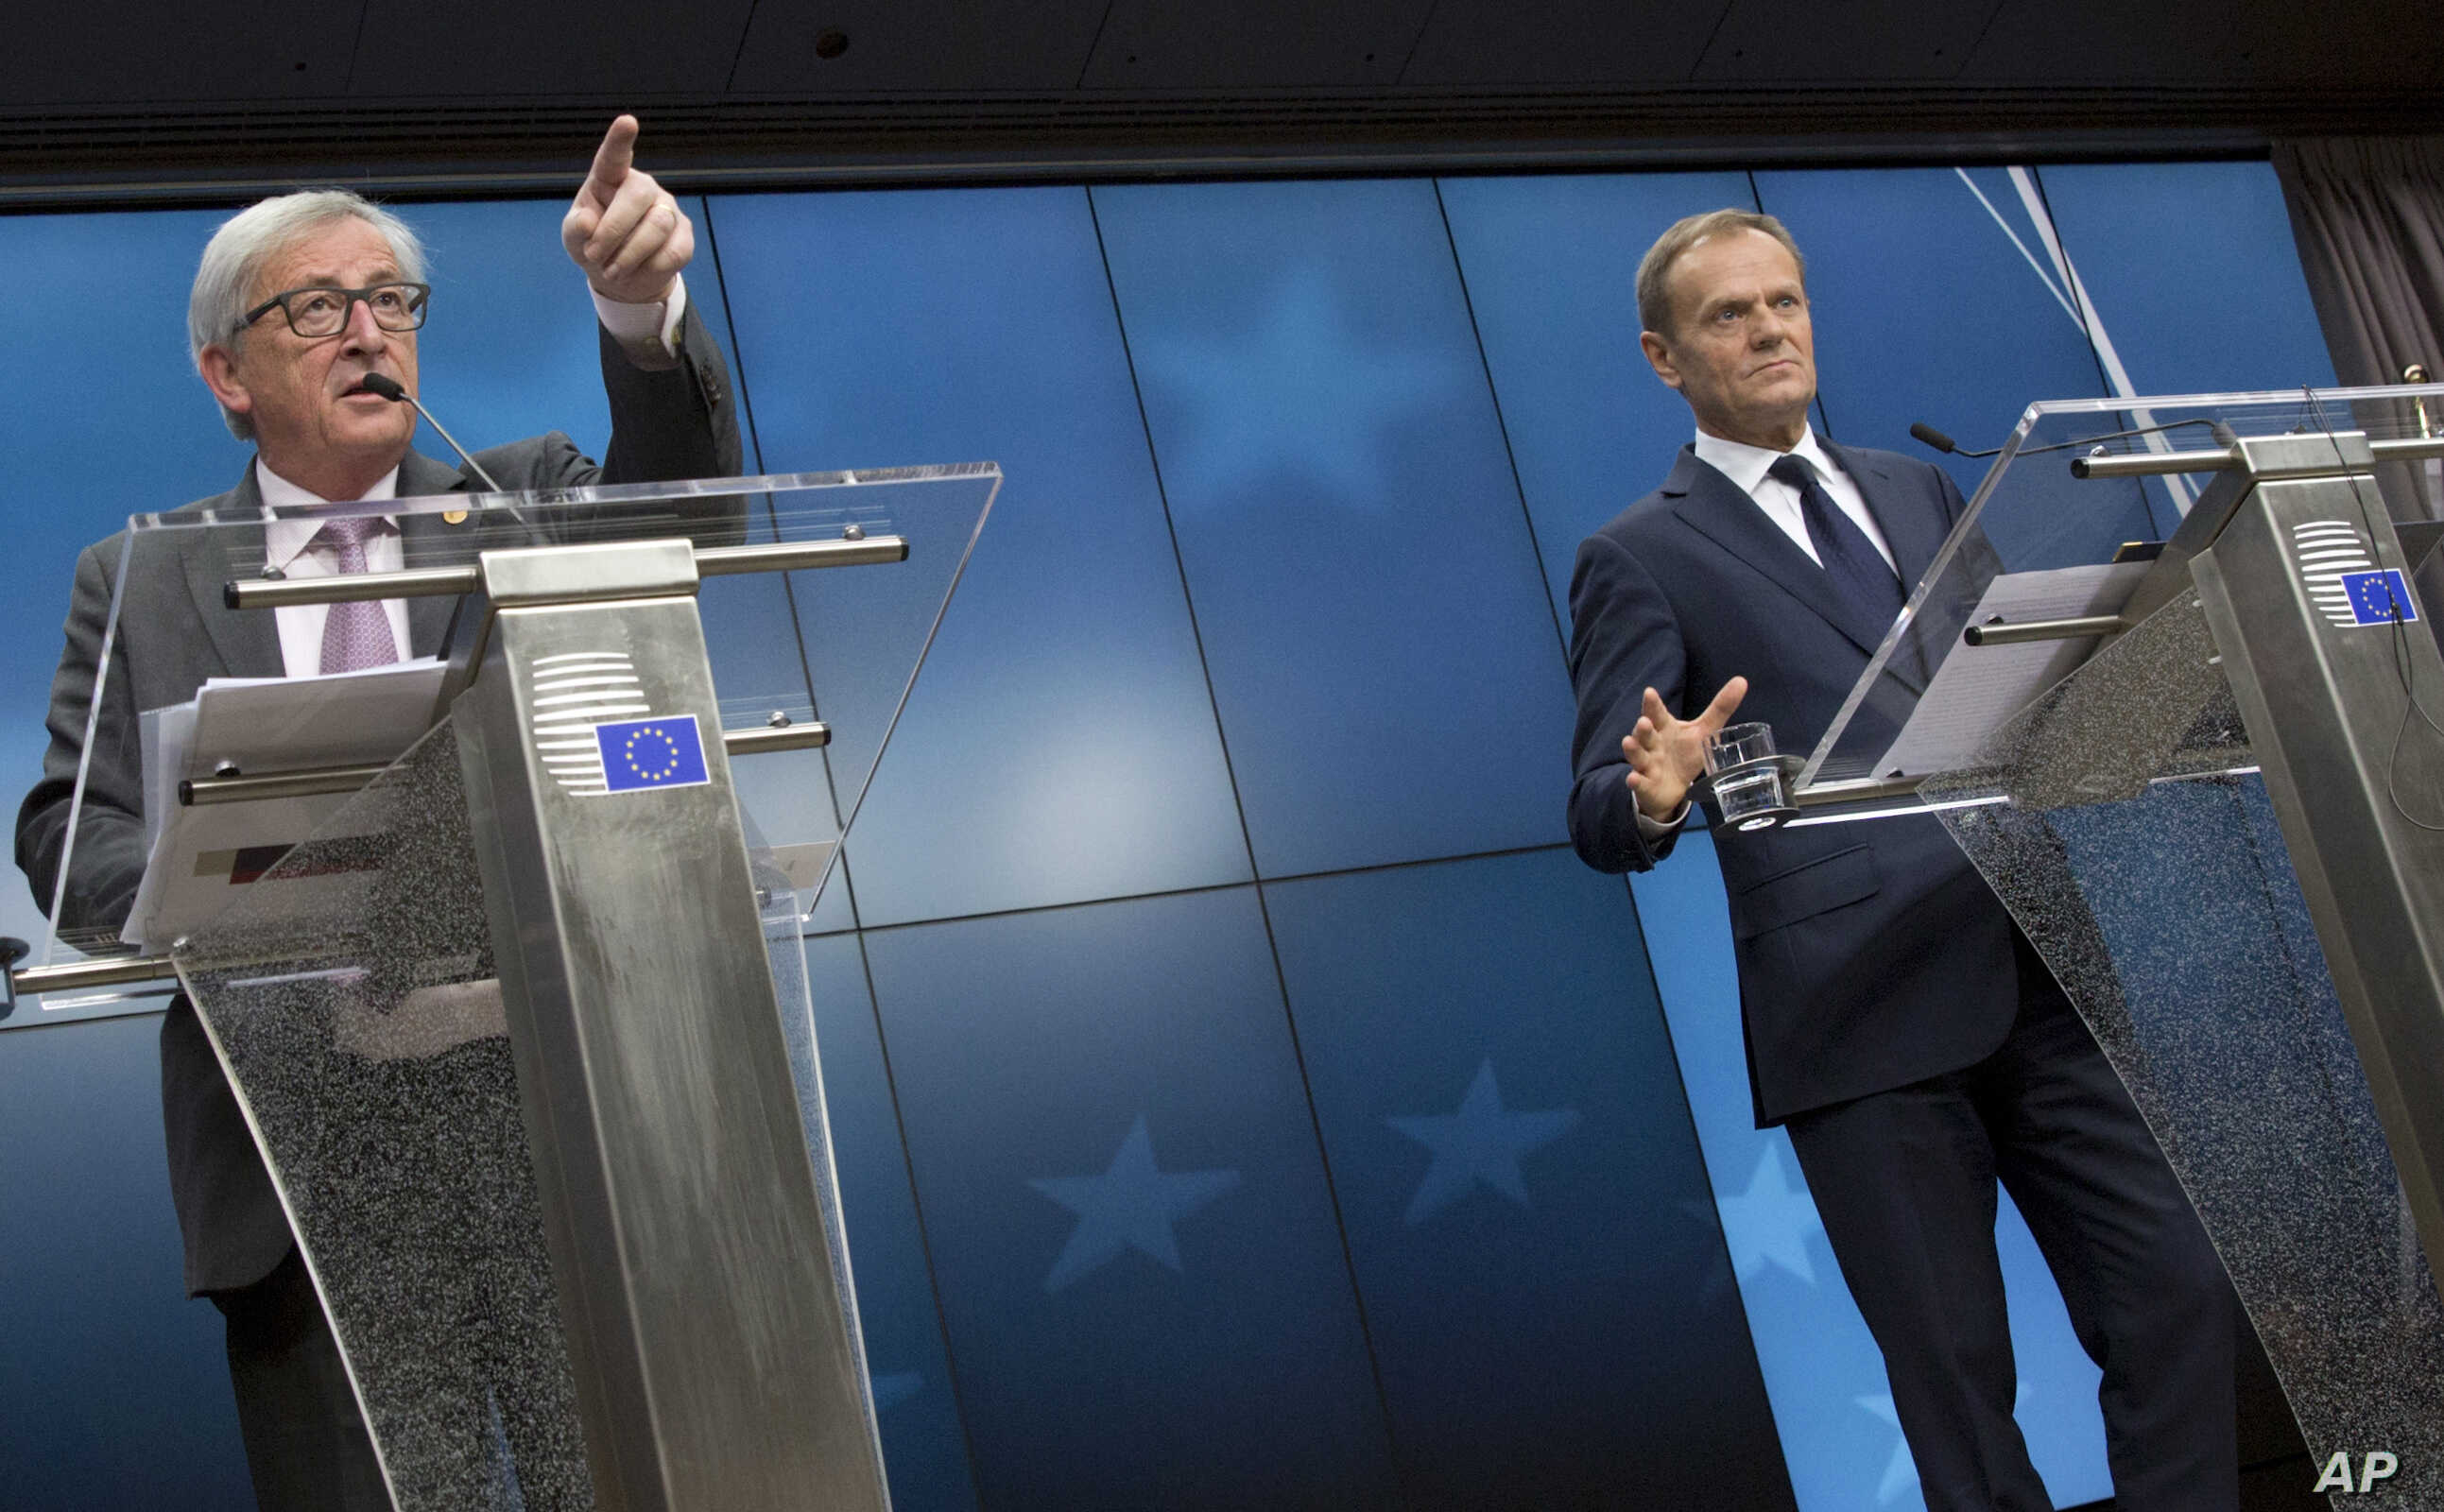 European Commission President Jean-Claude Juncker, left, and European Council President Donald Tusk address a media conference at the end of an EU summit in Brussels, Belgium, March 10, 2017.